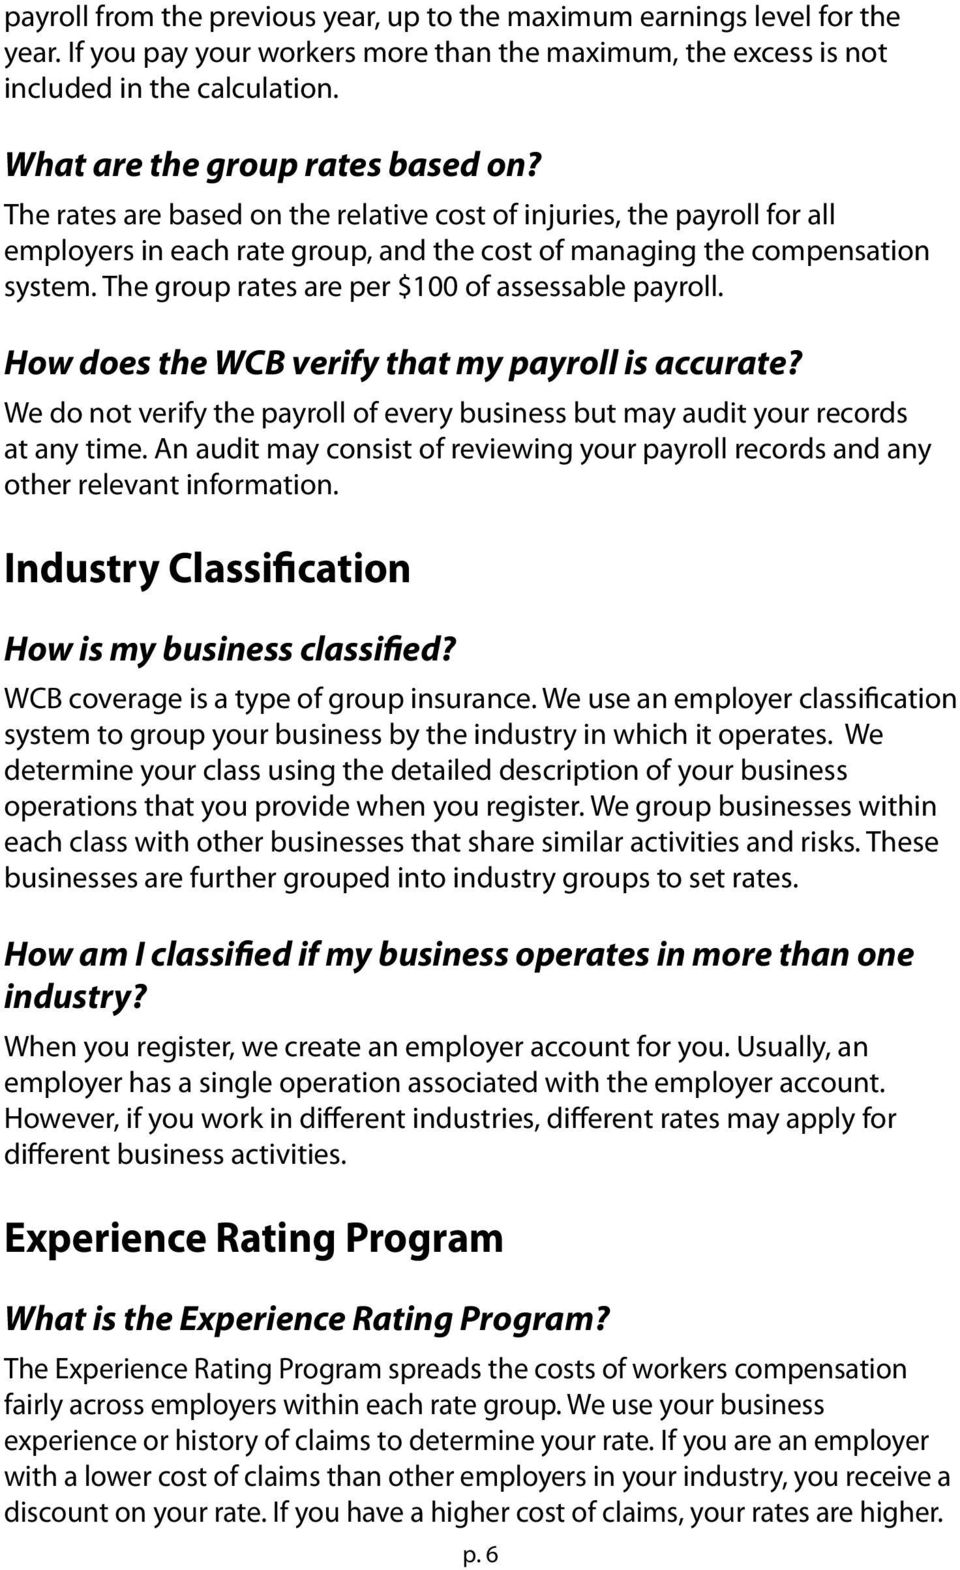 The group rates are per $100 of assessable payroll. How does the WCB verify that my payroll is accurate? We do not verify the payroll of every business but may audit your records at any time.